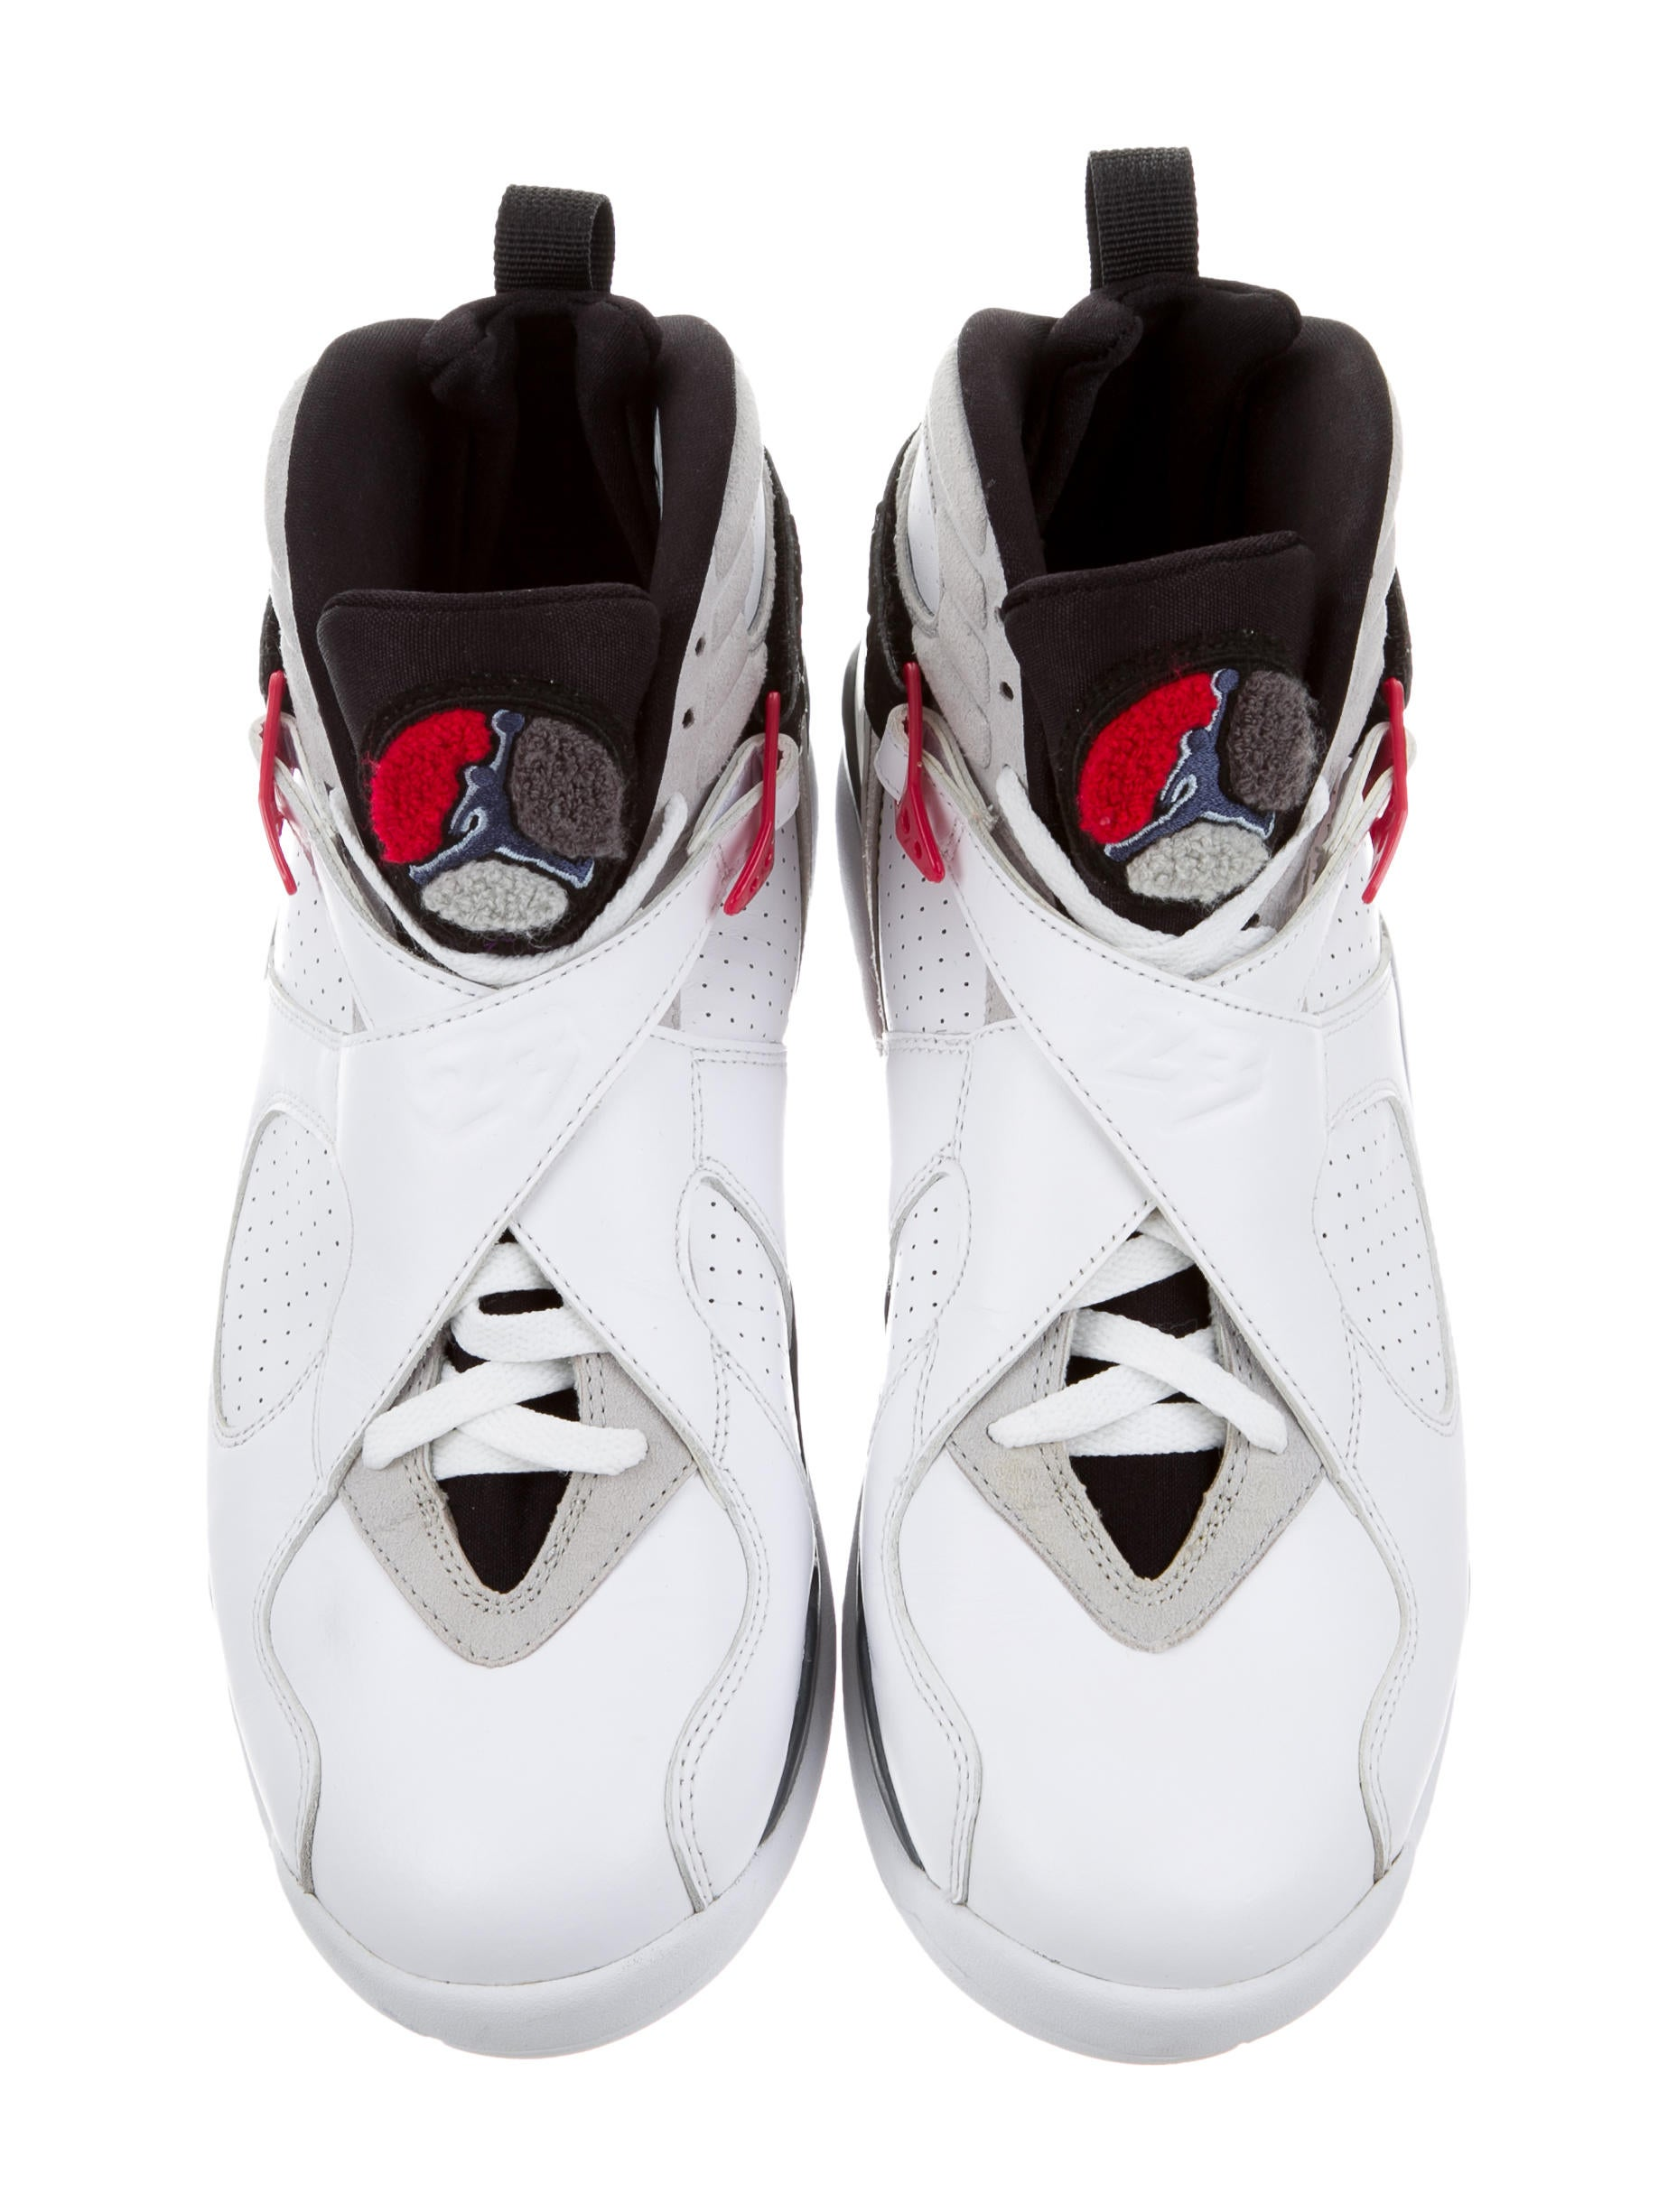 Retro 8 Bugs Bunny Sneakers